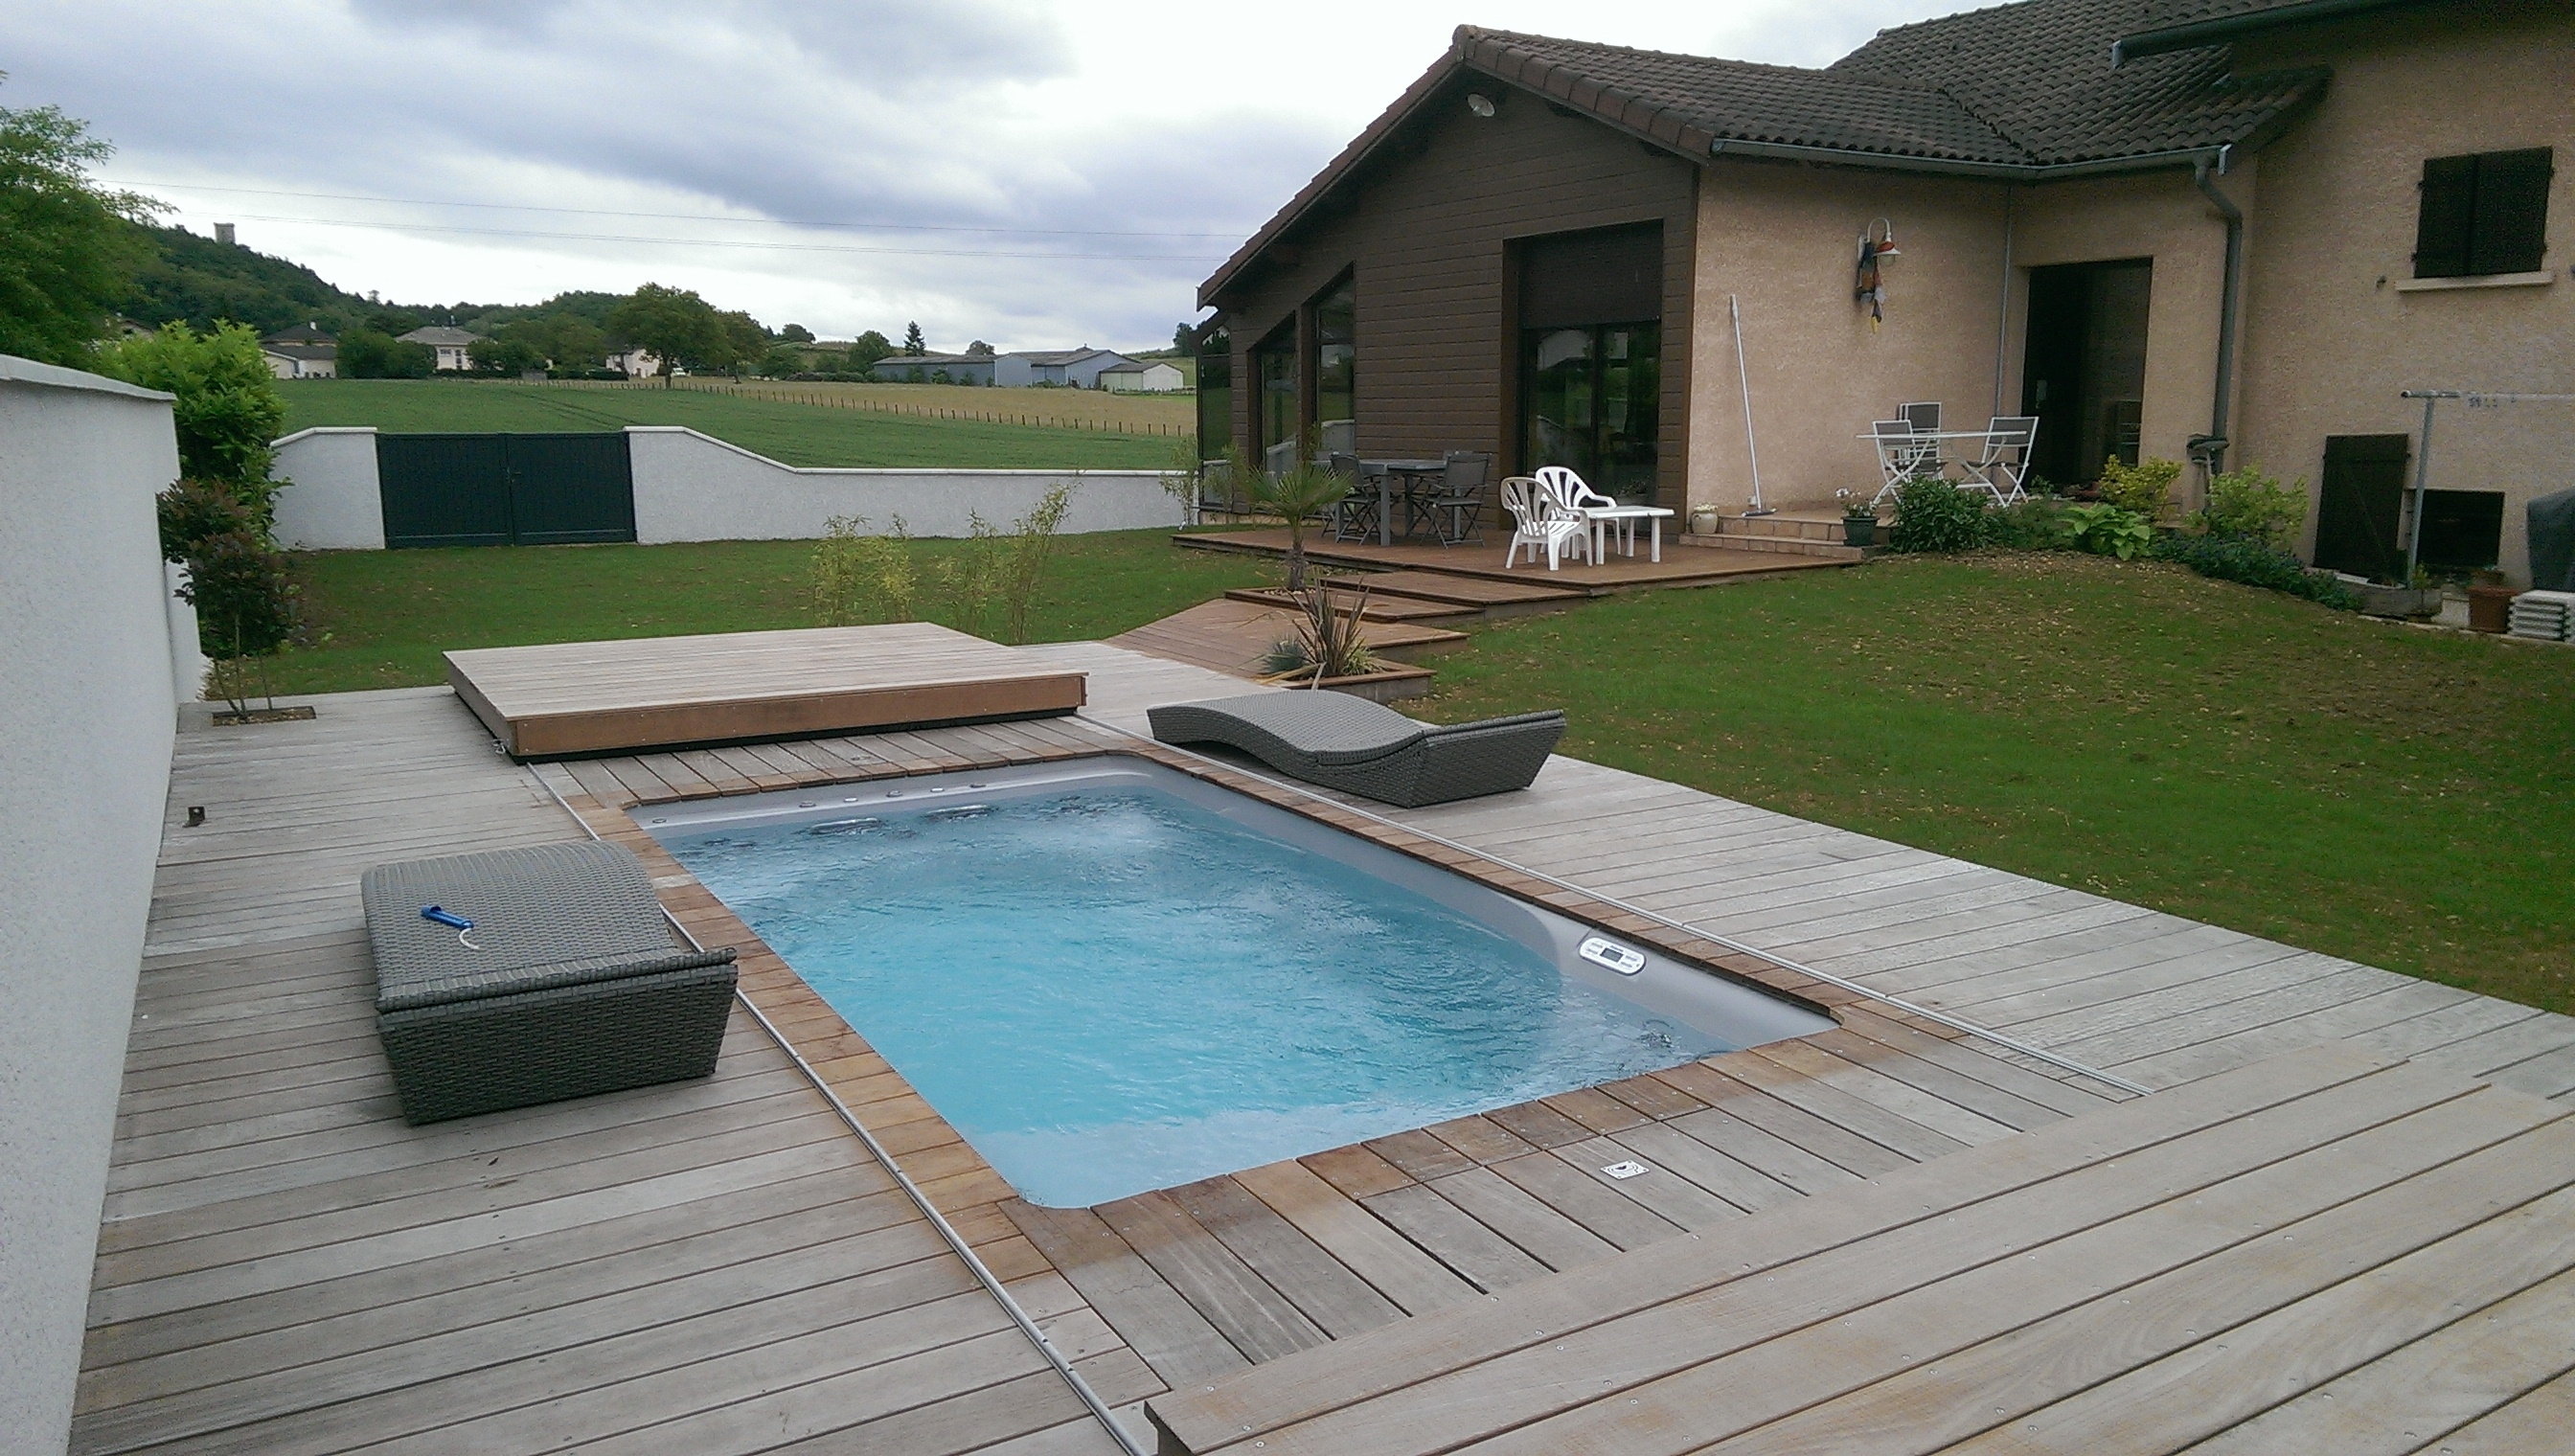 Piscine spa baln o nage contre courant pretty pool for Piscine nage contre courant